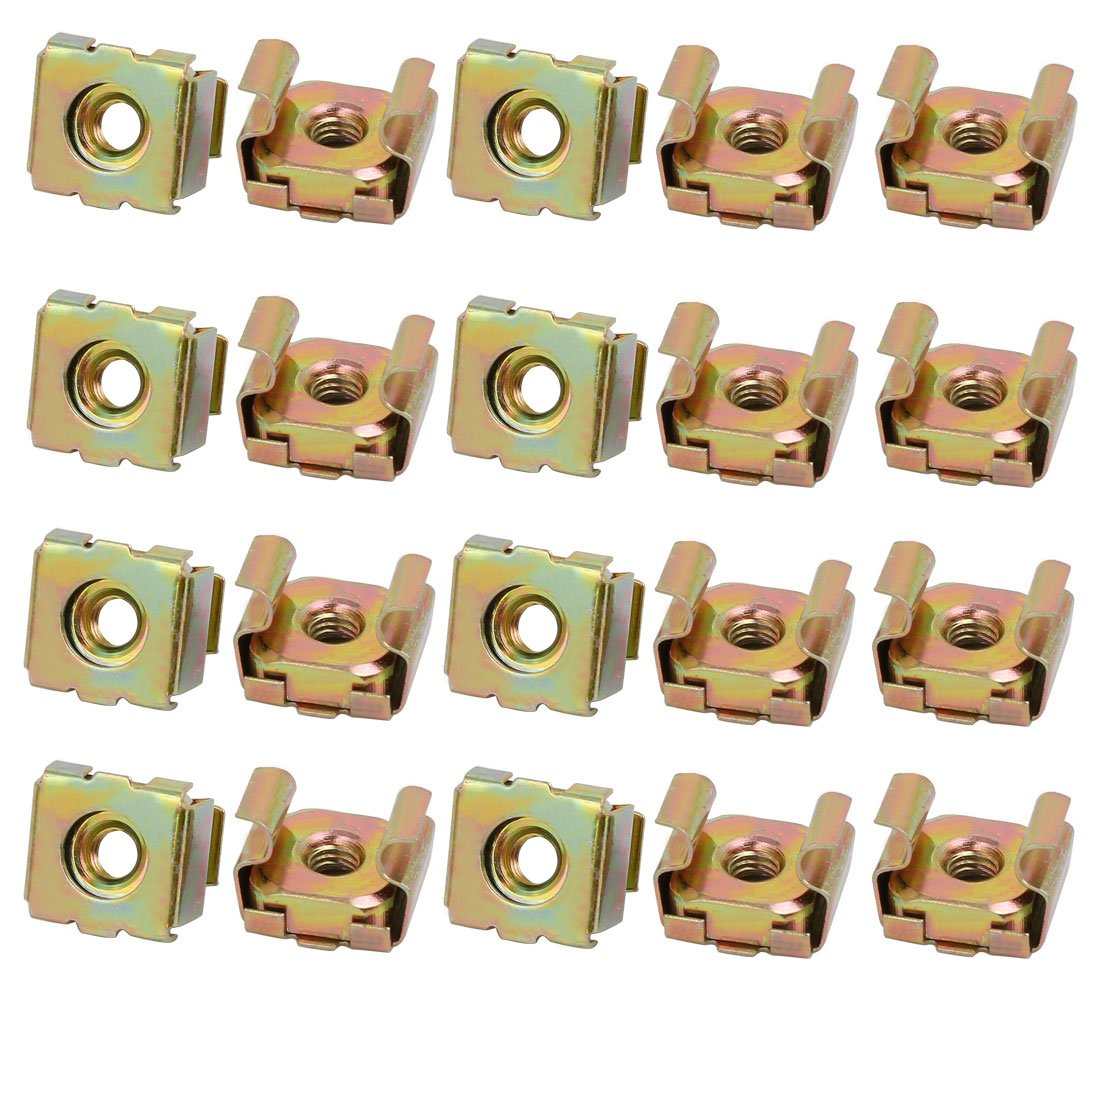 Sourcingmap® 20pcs M4 Carbon Steel Captive Cage Nut Brass Tone for Server Shelf Cabinet a17092500ux0072